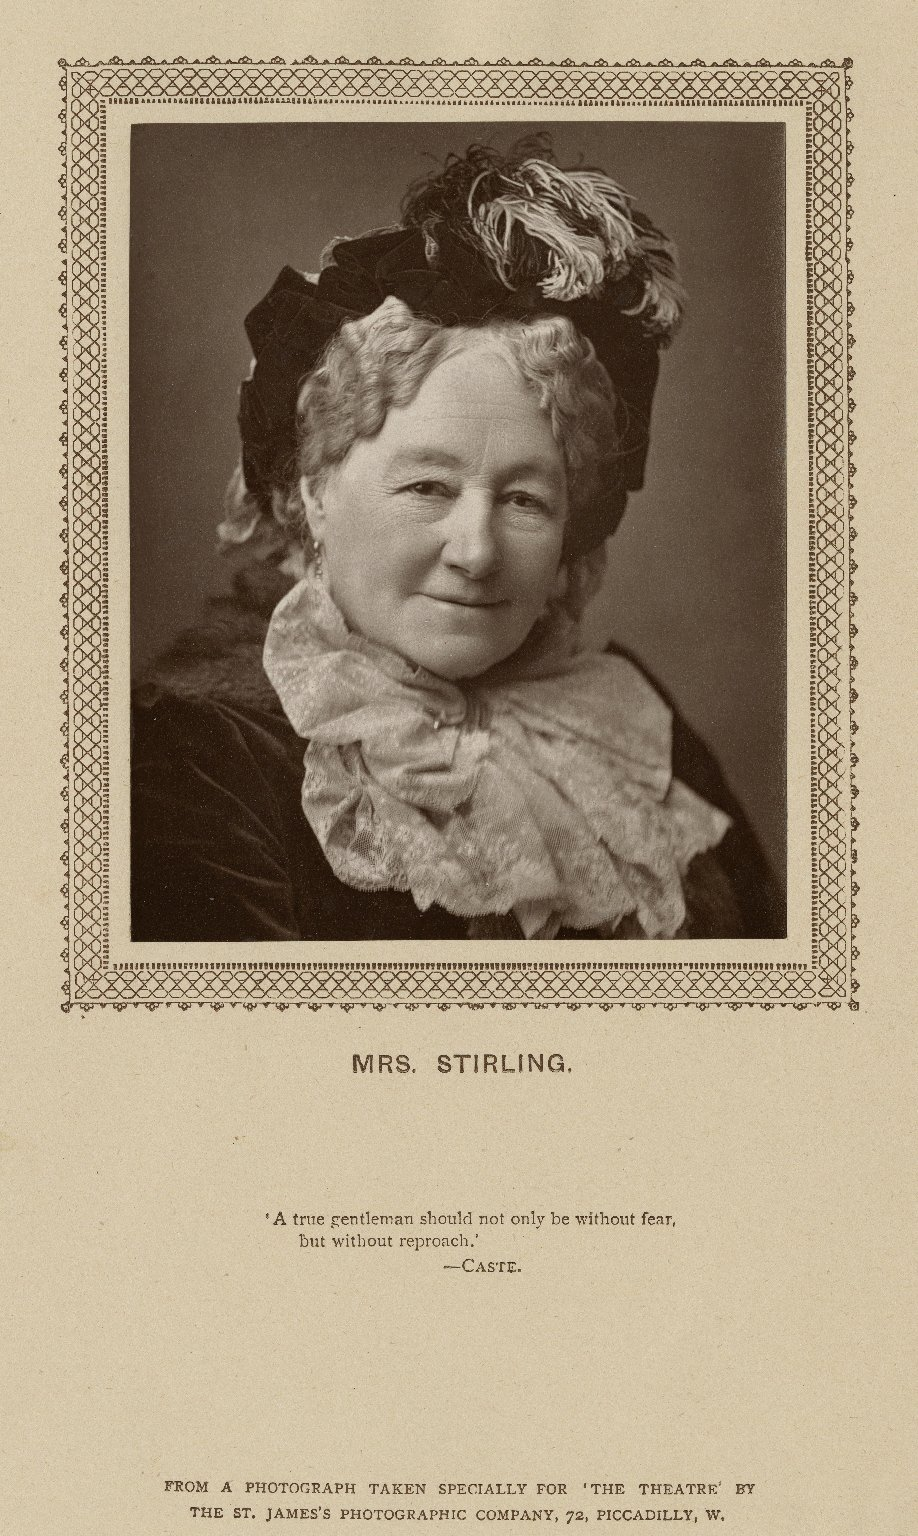 Mrs. Stirling [graphic] / from a photograph taken by ... the St. James's Photographic Company.